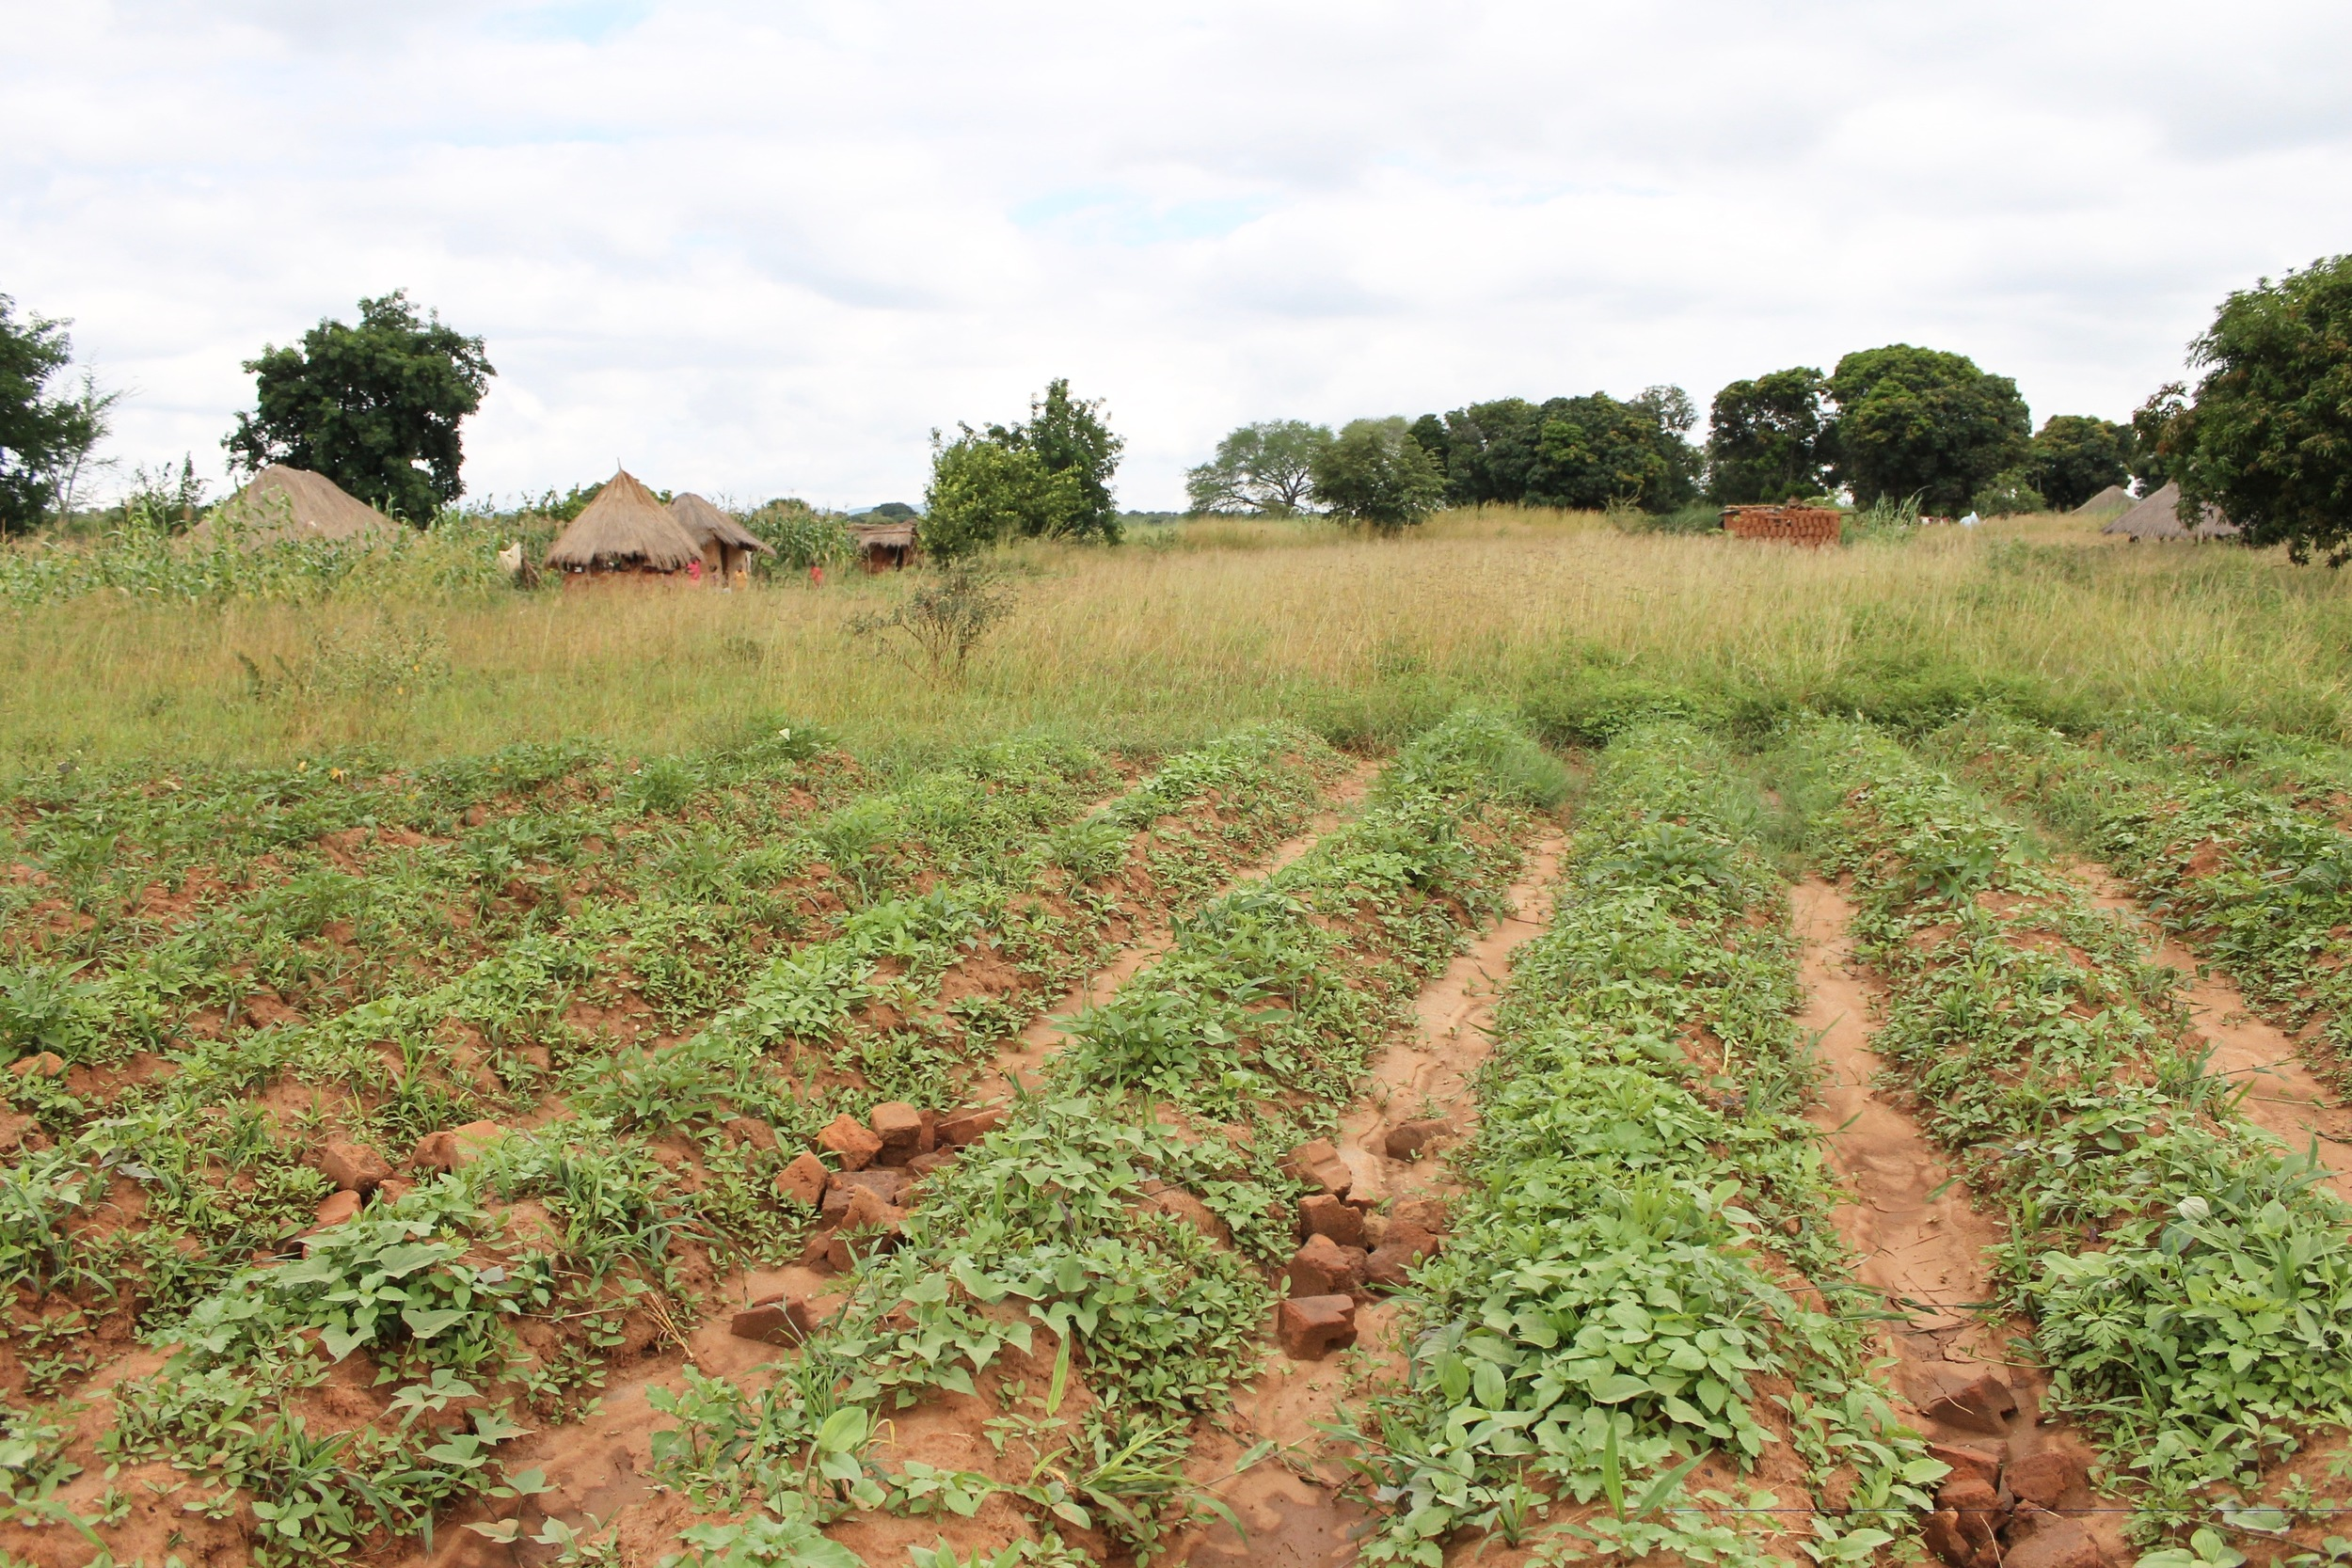 We all admired the new crop of sweet potatoes being grown in the village, made possible by Village Twist Bracelet sales for women to buy seed and fertilizer.